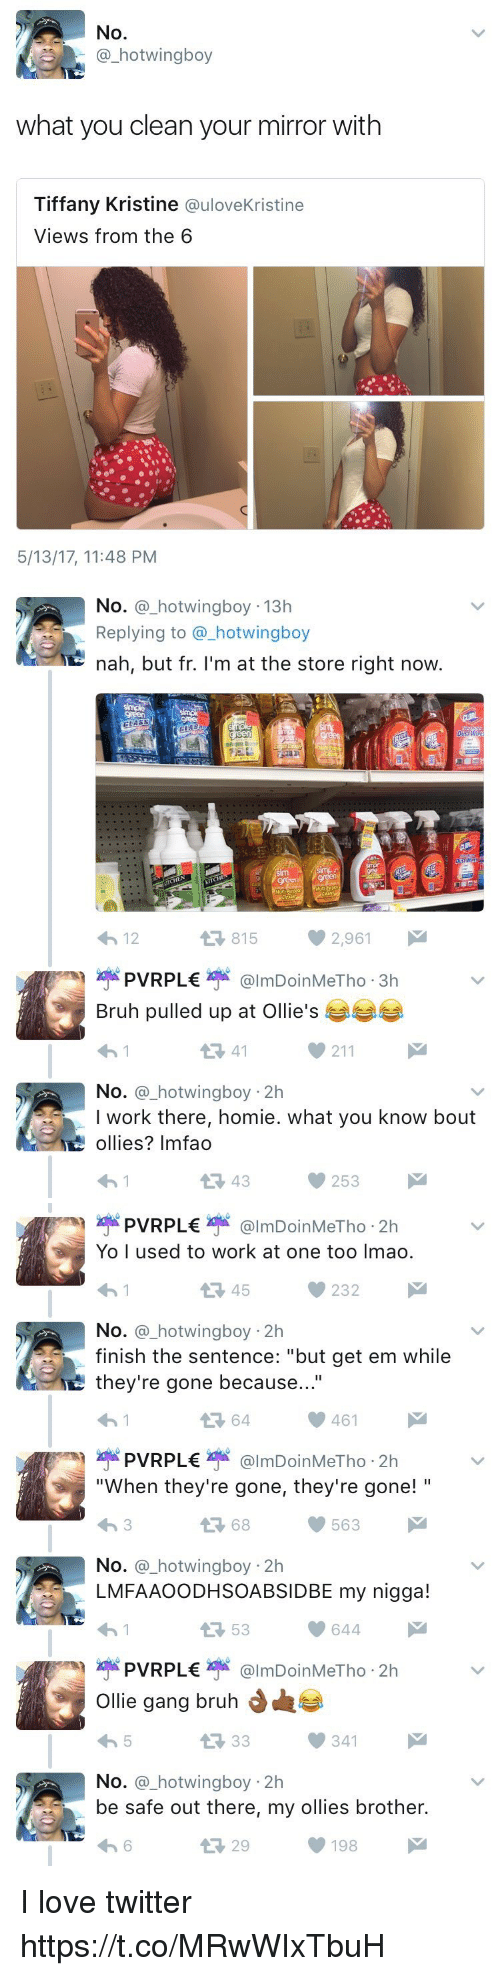 "Blackpeopletwitter, Bruh, and Homie: No.  a hotwingboy  what you clean your mirror with  Tiffany Kristine  a uloveKristine  Views from the 6  5/13/17, 11 48 PM   No  a hotwingboy 13h  Replying to a hotwingboy  nah, but fr. I'm at the store right now  815  2,961  4h 12  PVR PL€  Bruh pulled up at Ollie's  211  No  hotwingboy 2h  I work there, homie. what you know bout  ollies? Imfao  253   PVR PL€  Yo I used to work at one too lmao.  232  No  a hotwing boy 2h  finish the sentence: ""but get em while  they're gone because  461  PVR PL€  ""When they're gone, they're gone!  68  563  No  a hotwing boy 2h  LMFA AOODHSOABSIDBE my nigga!  644  53  PVR PL€  Ollie gang bruh  d  341  No  a hot  boy 2h  be safe out there, my ollies brother.  198  M I love twitter https://t.co/MRwWIxTbuH"